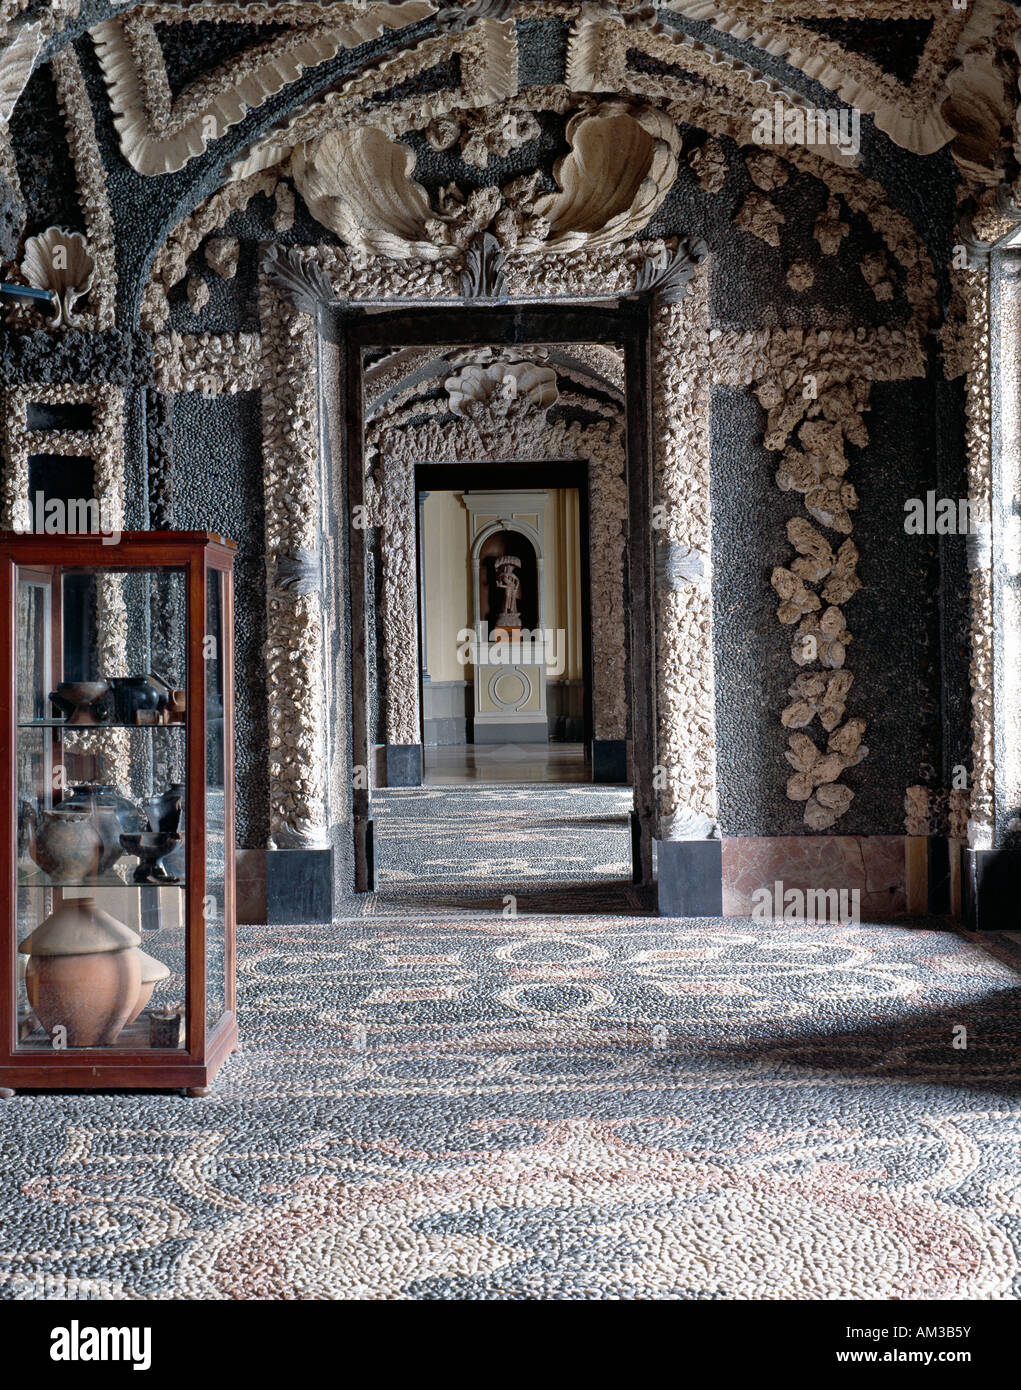 The Baroque island palace and garden of Isola Bella, Lake Maggiore, Italy. The underground museum of curiosities - Stock Image